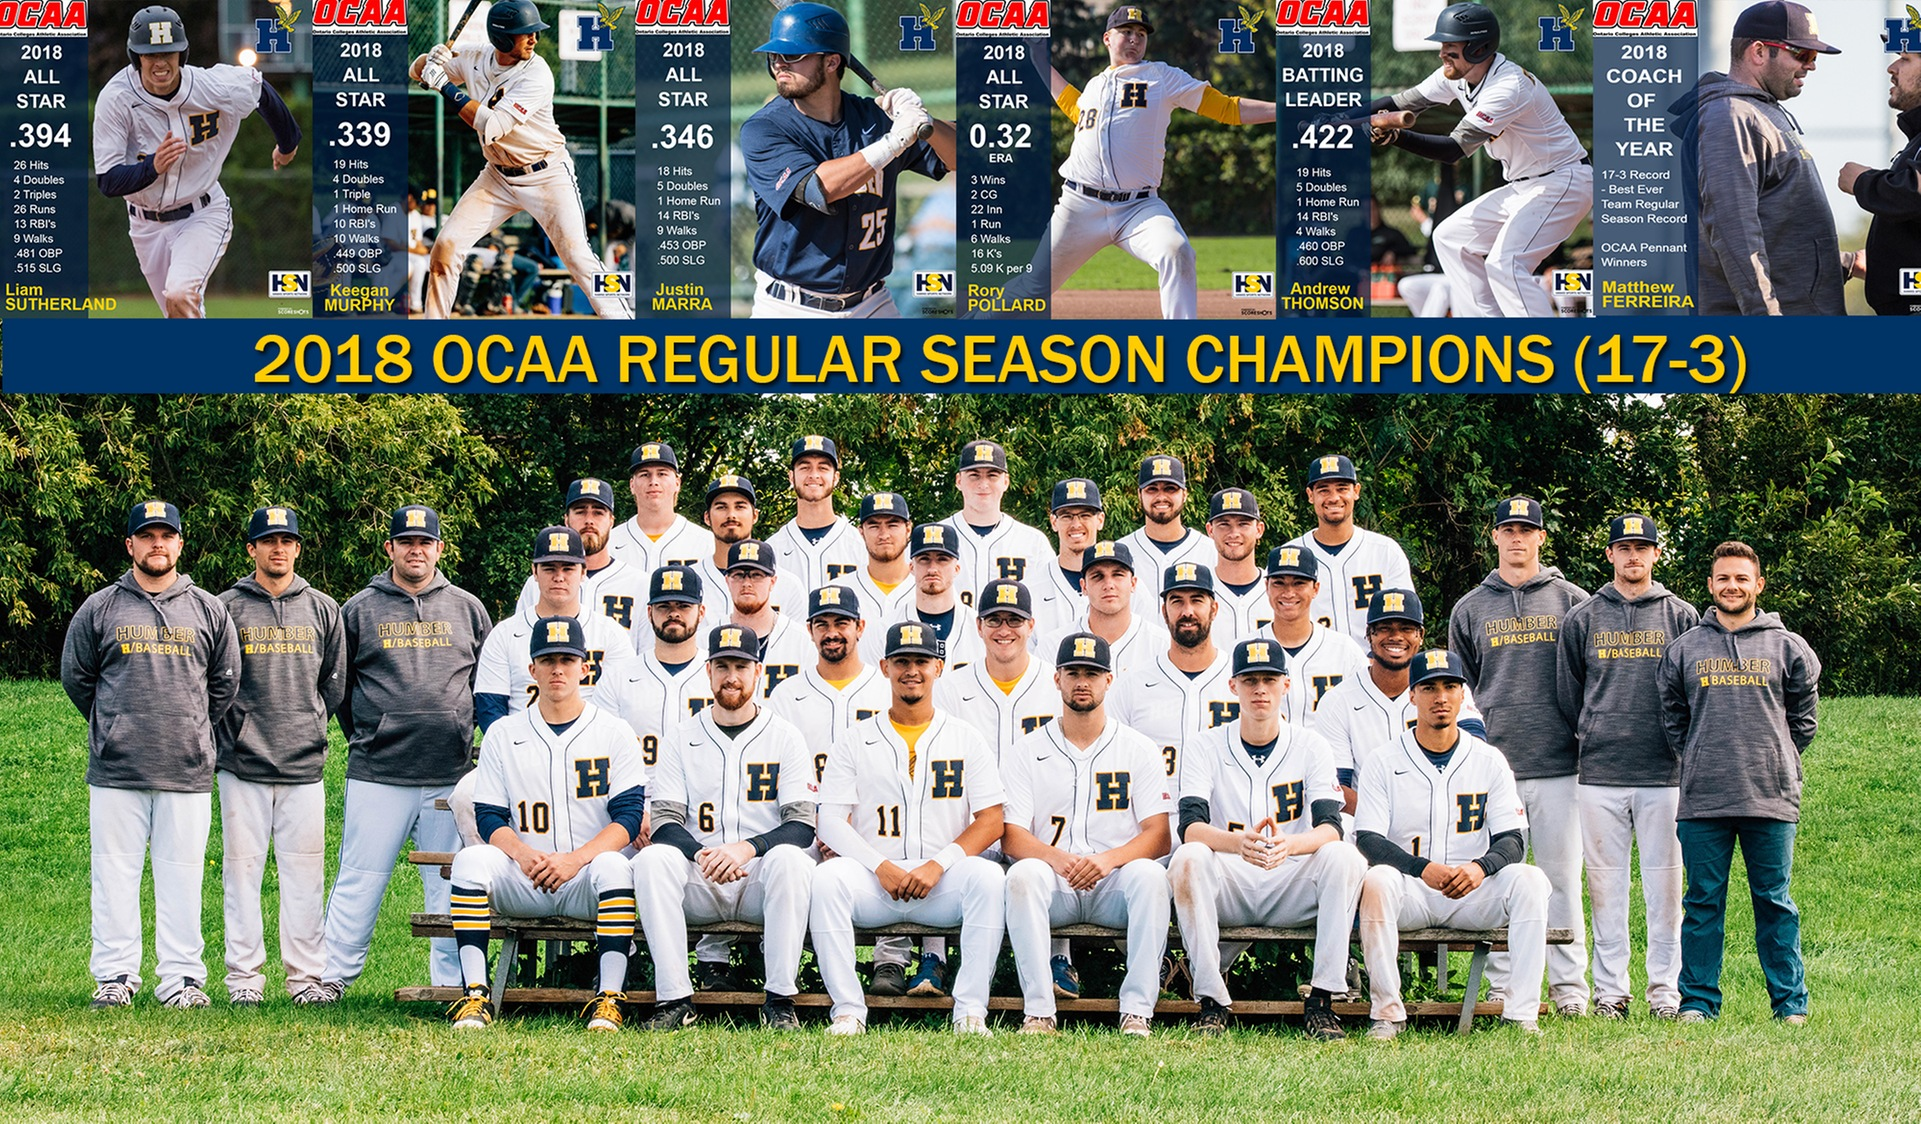 HAWKS BASEBALL TEAM, COACH & PLAYERS HONOURED AT 2018 OCAA AWARDS BANQUET